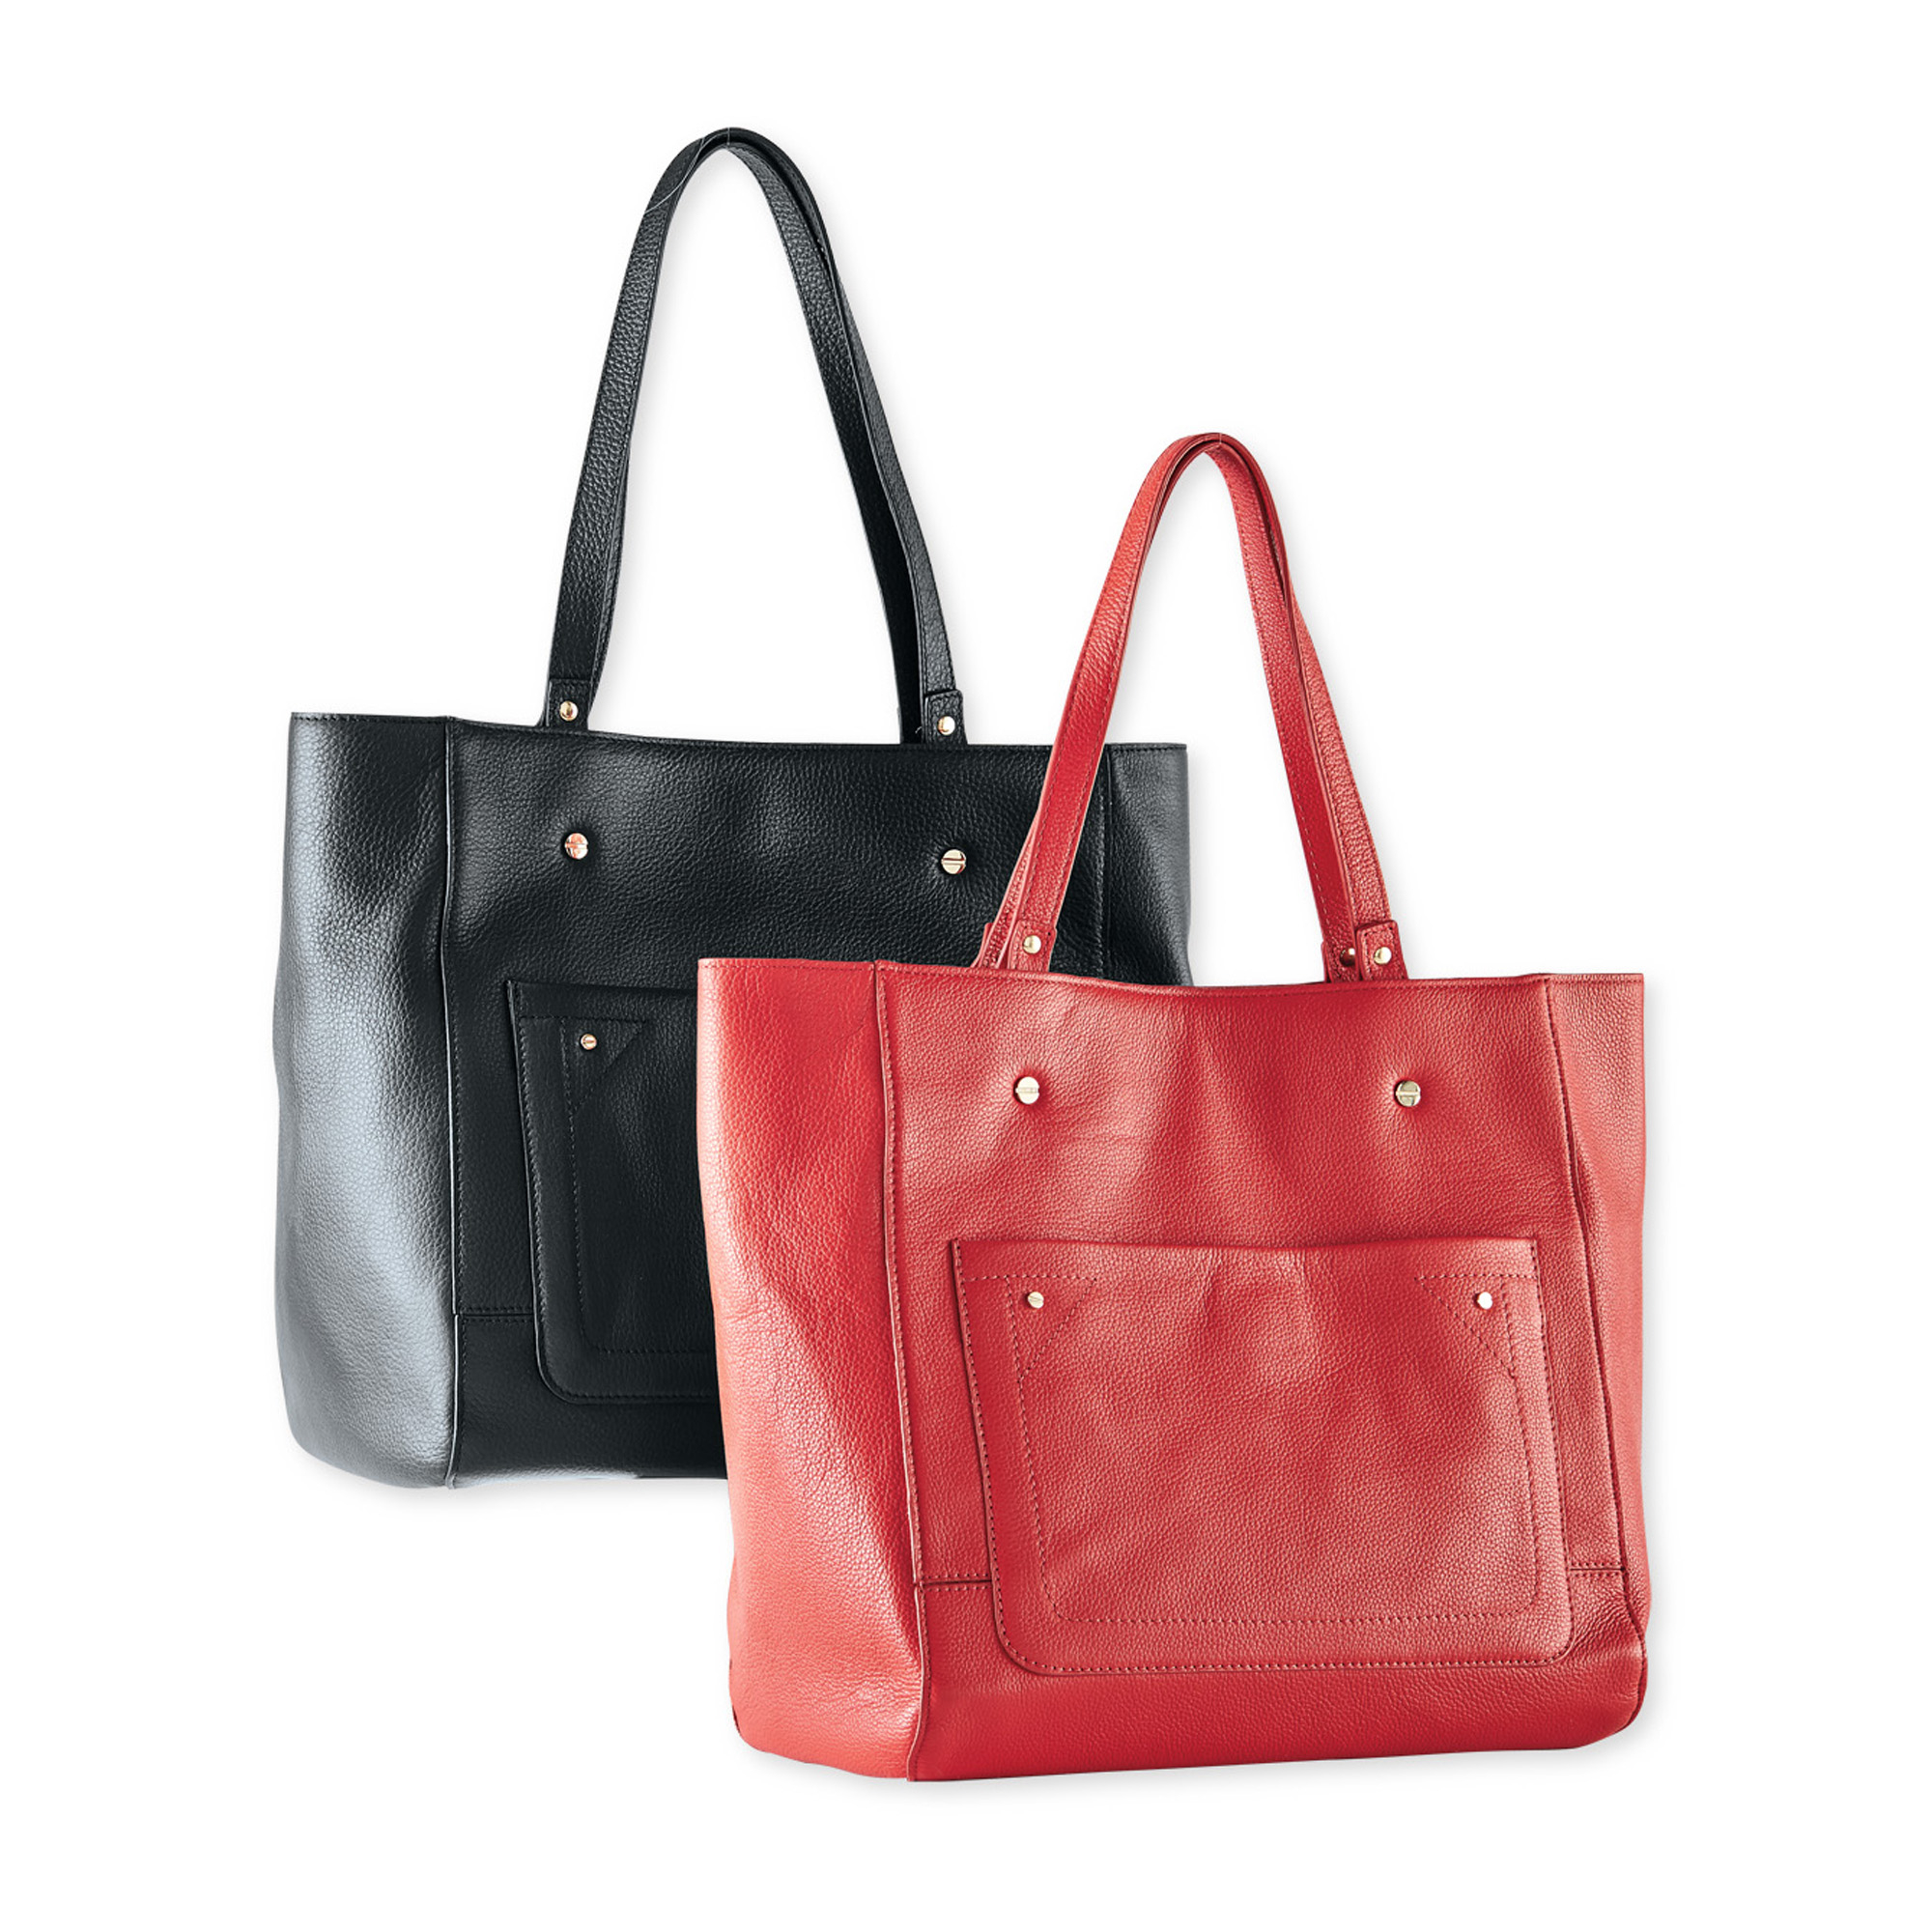 Gump's Signature Leather Tote